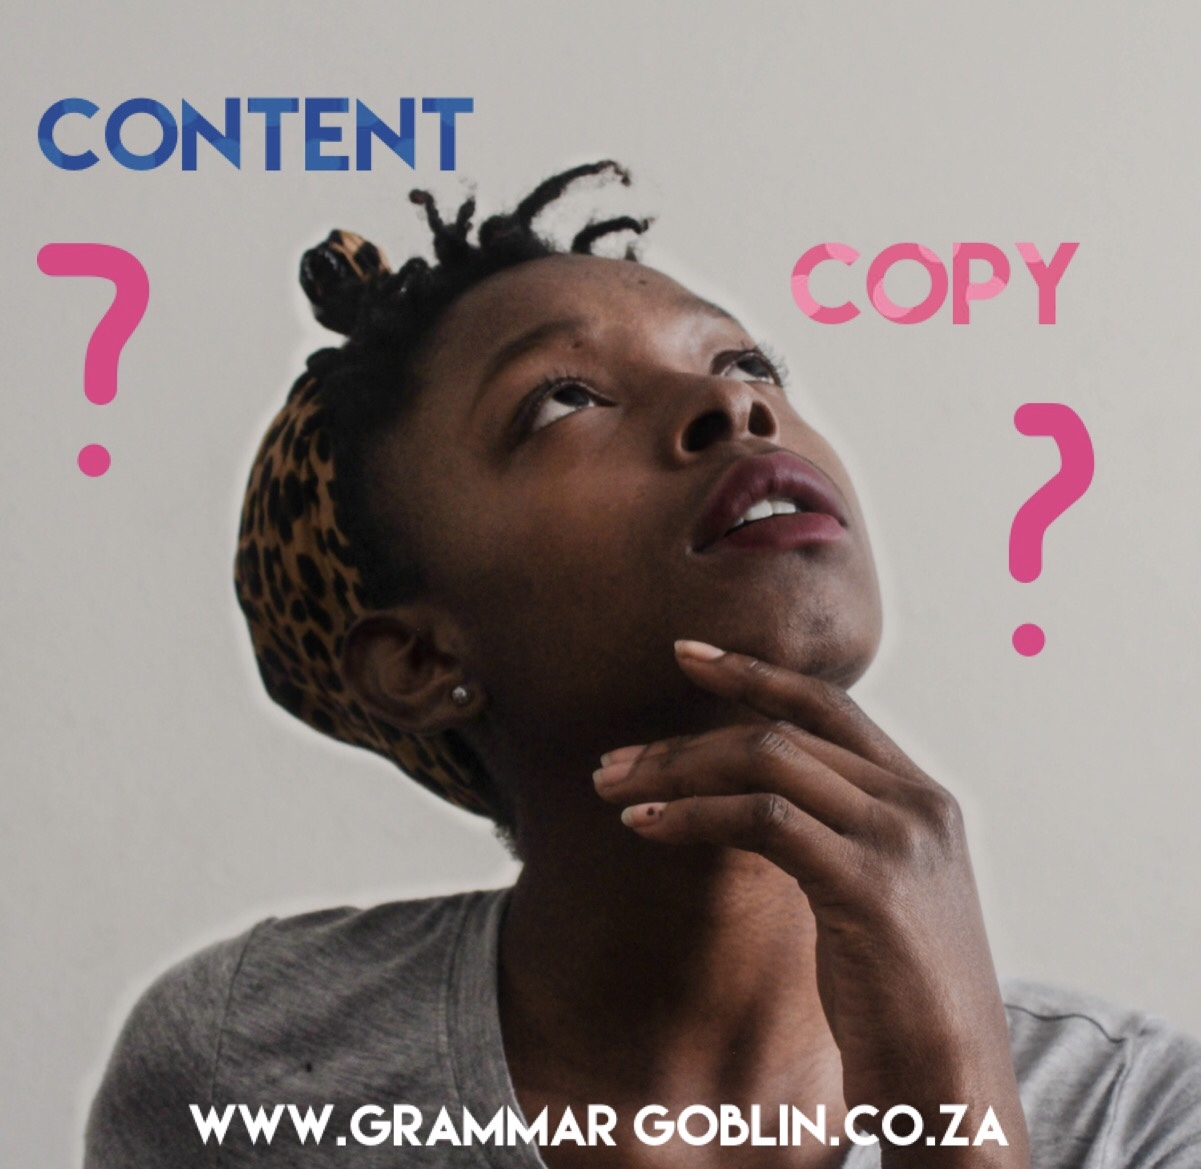 Copy vs Content: What's the Difference?